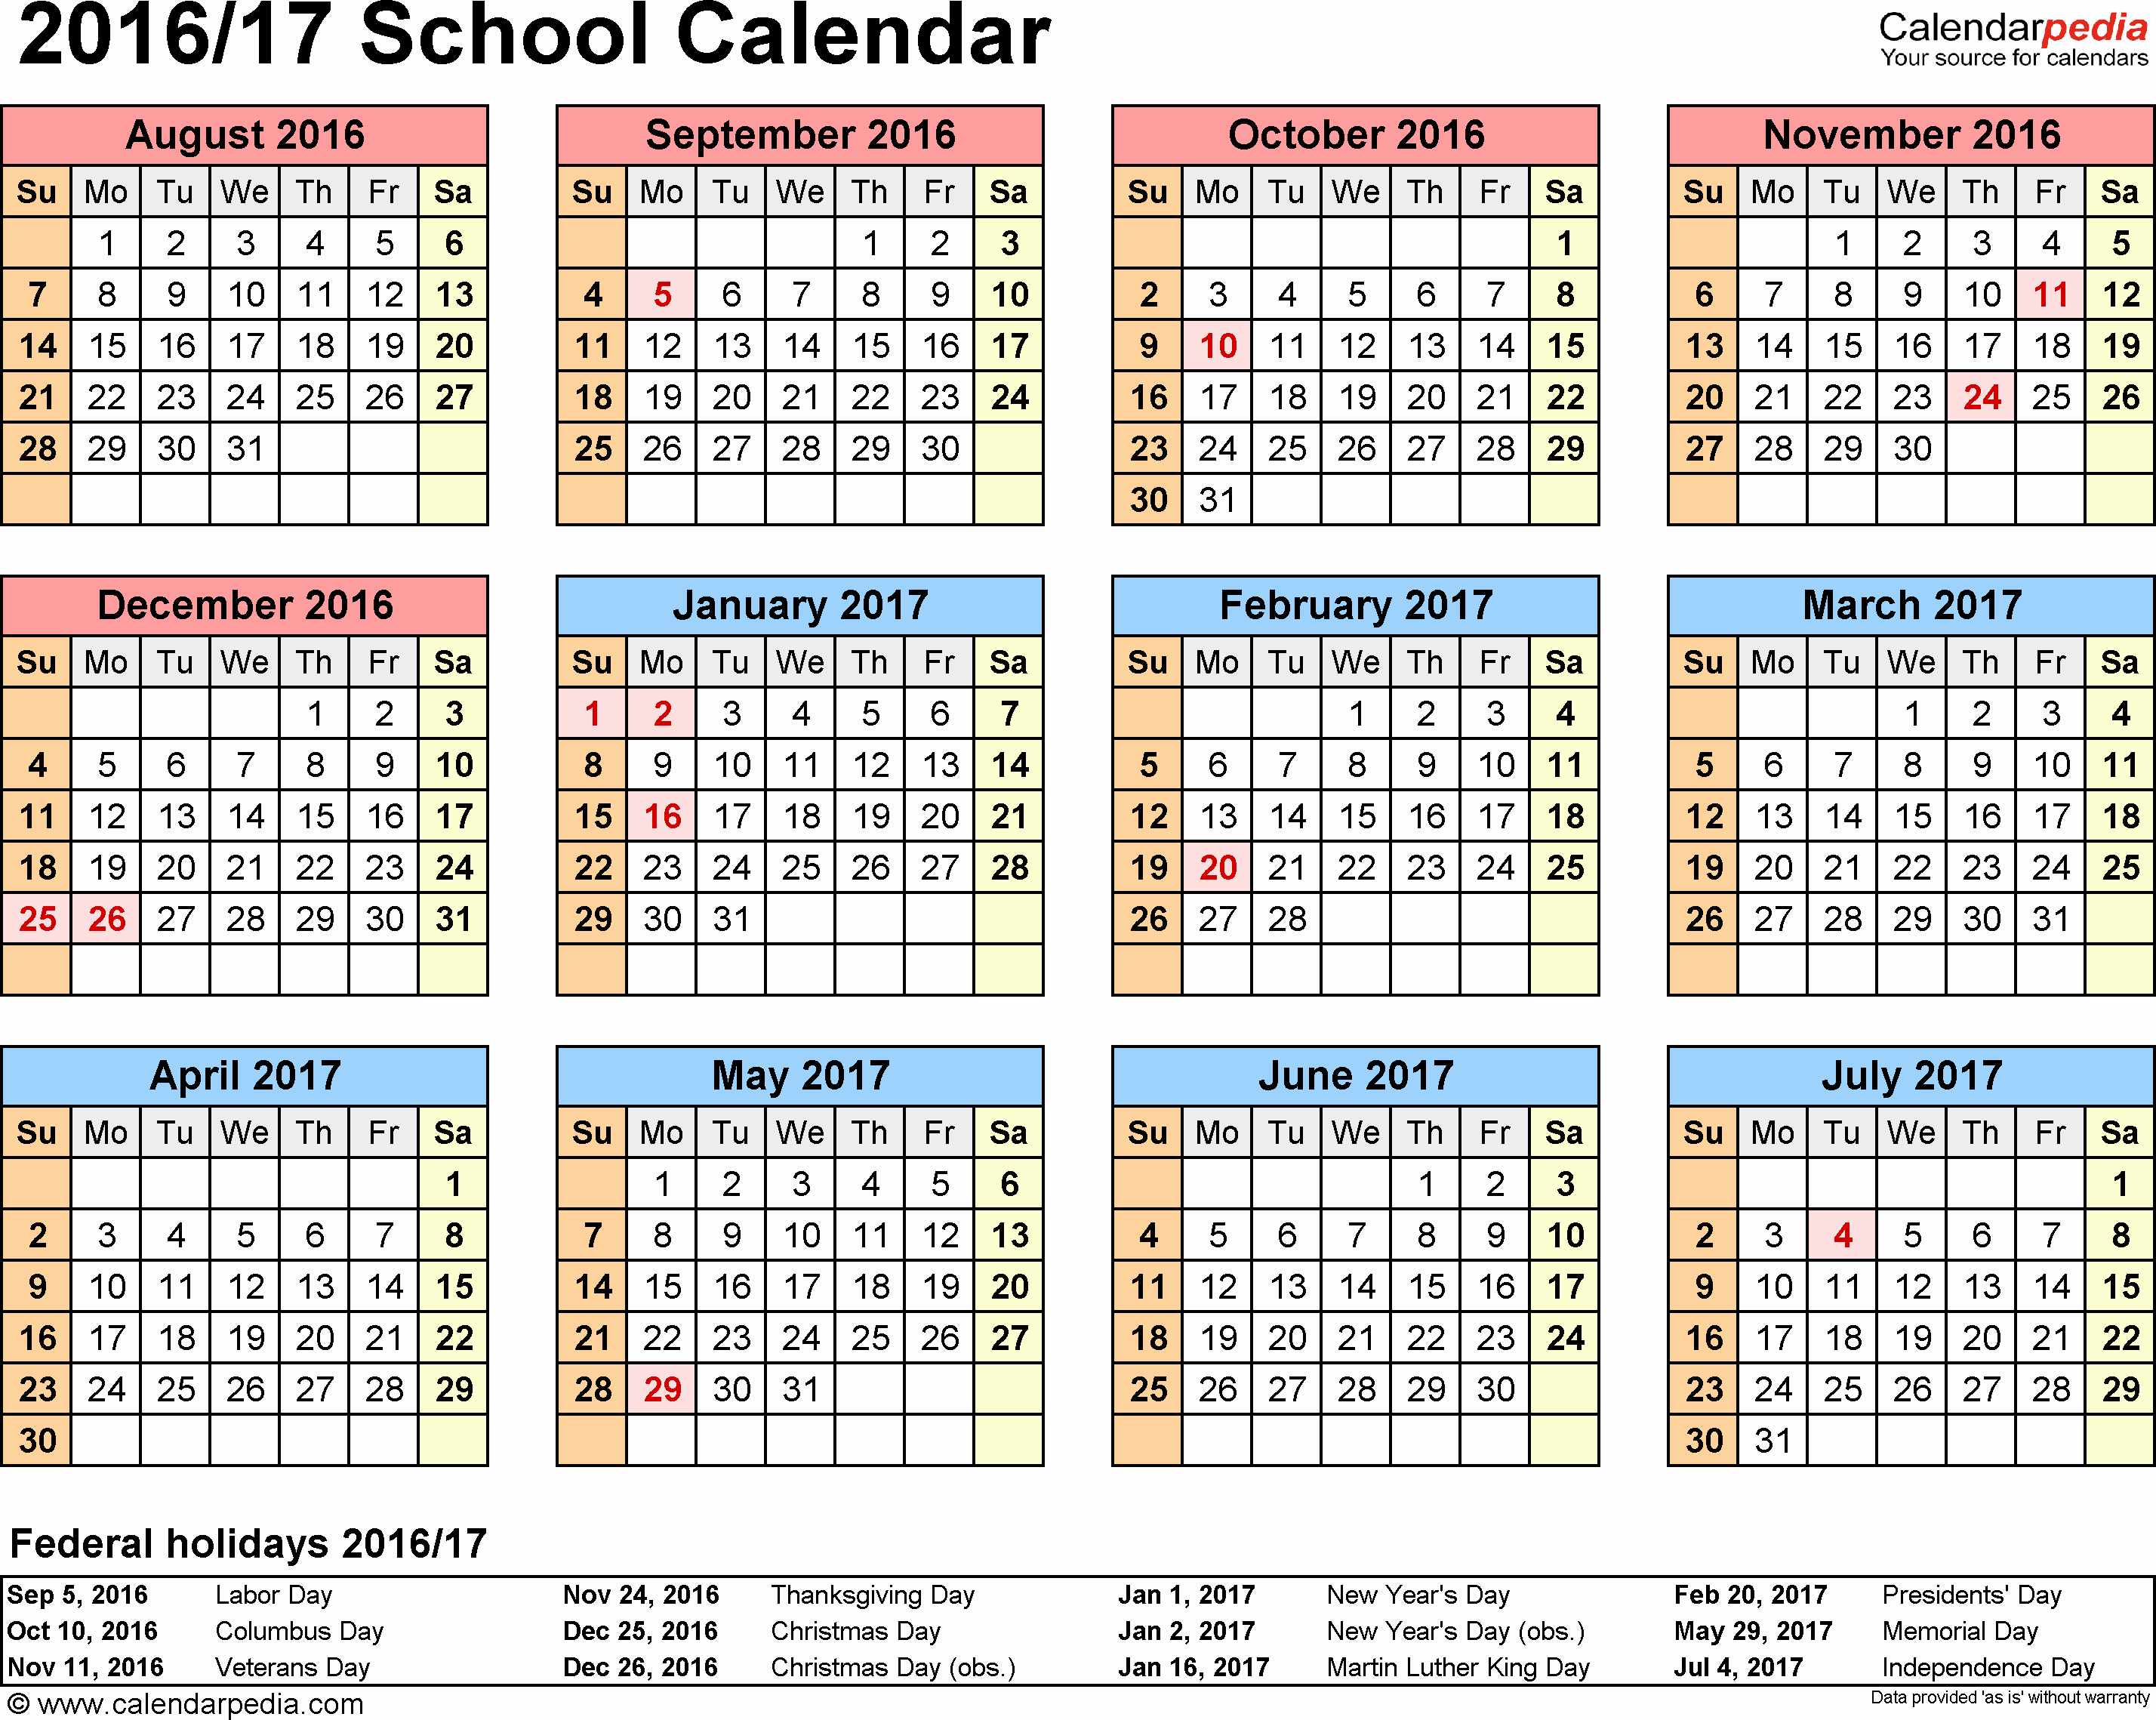 5 Year Calendar Starting 2016 Fresh Template 4 School Calendar 2016 17 for Word Landscape